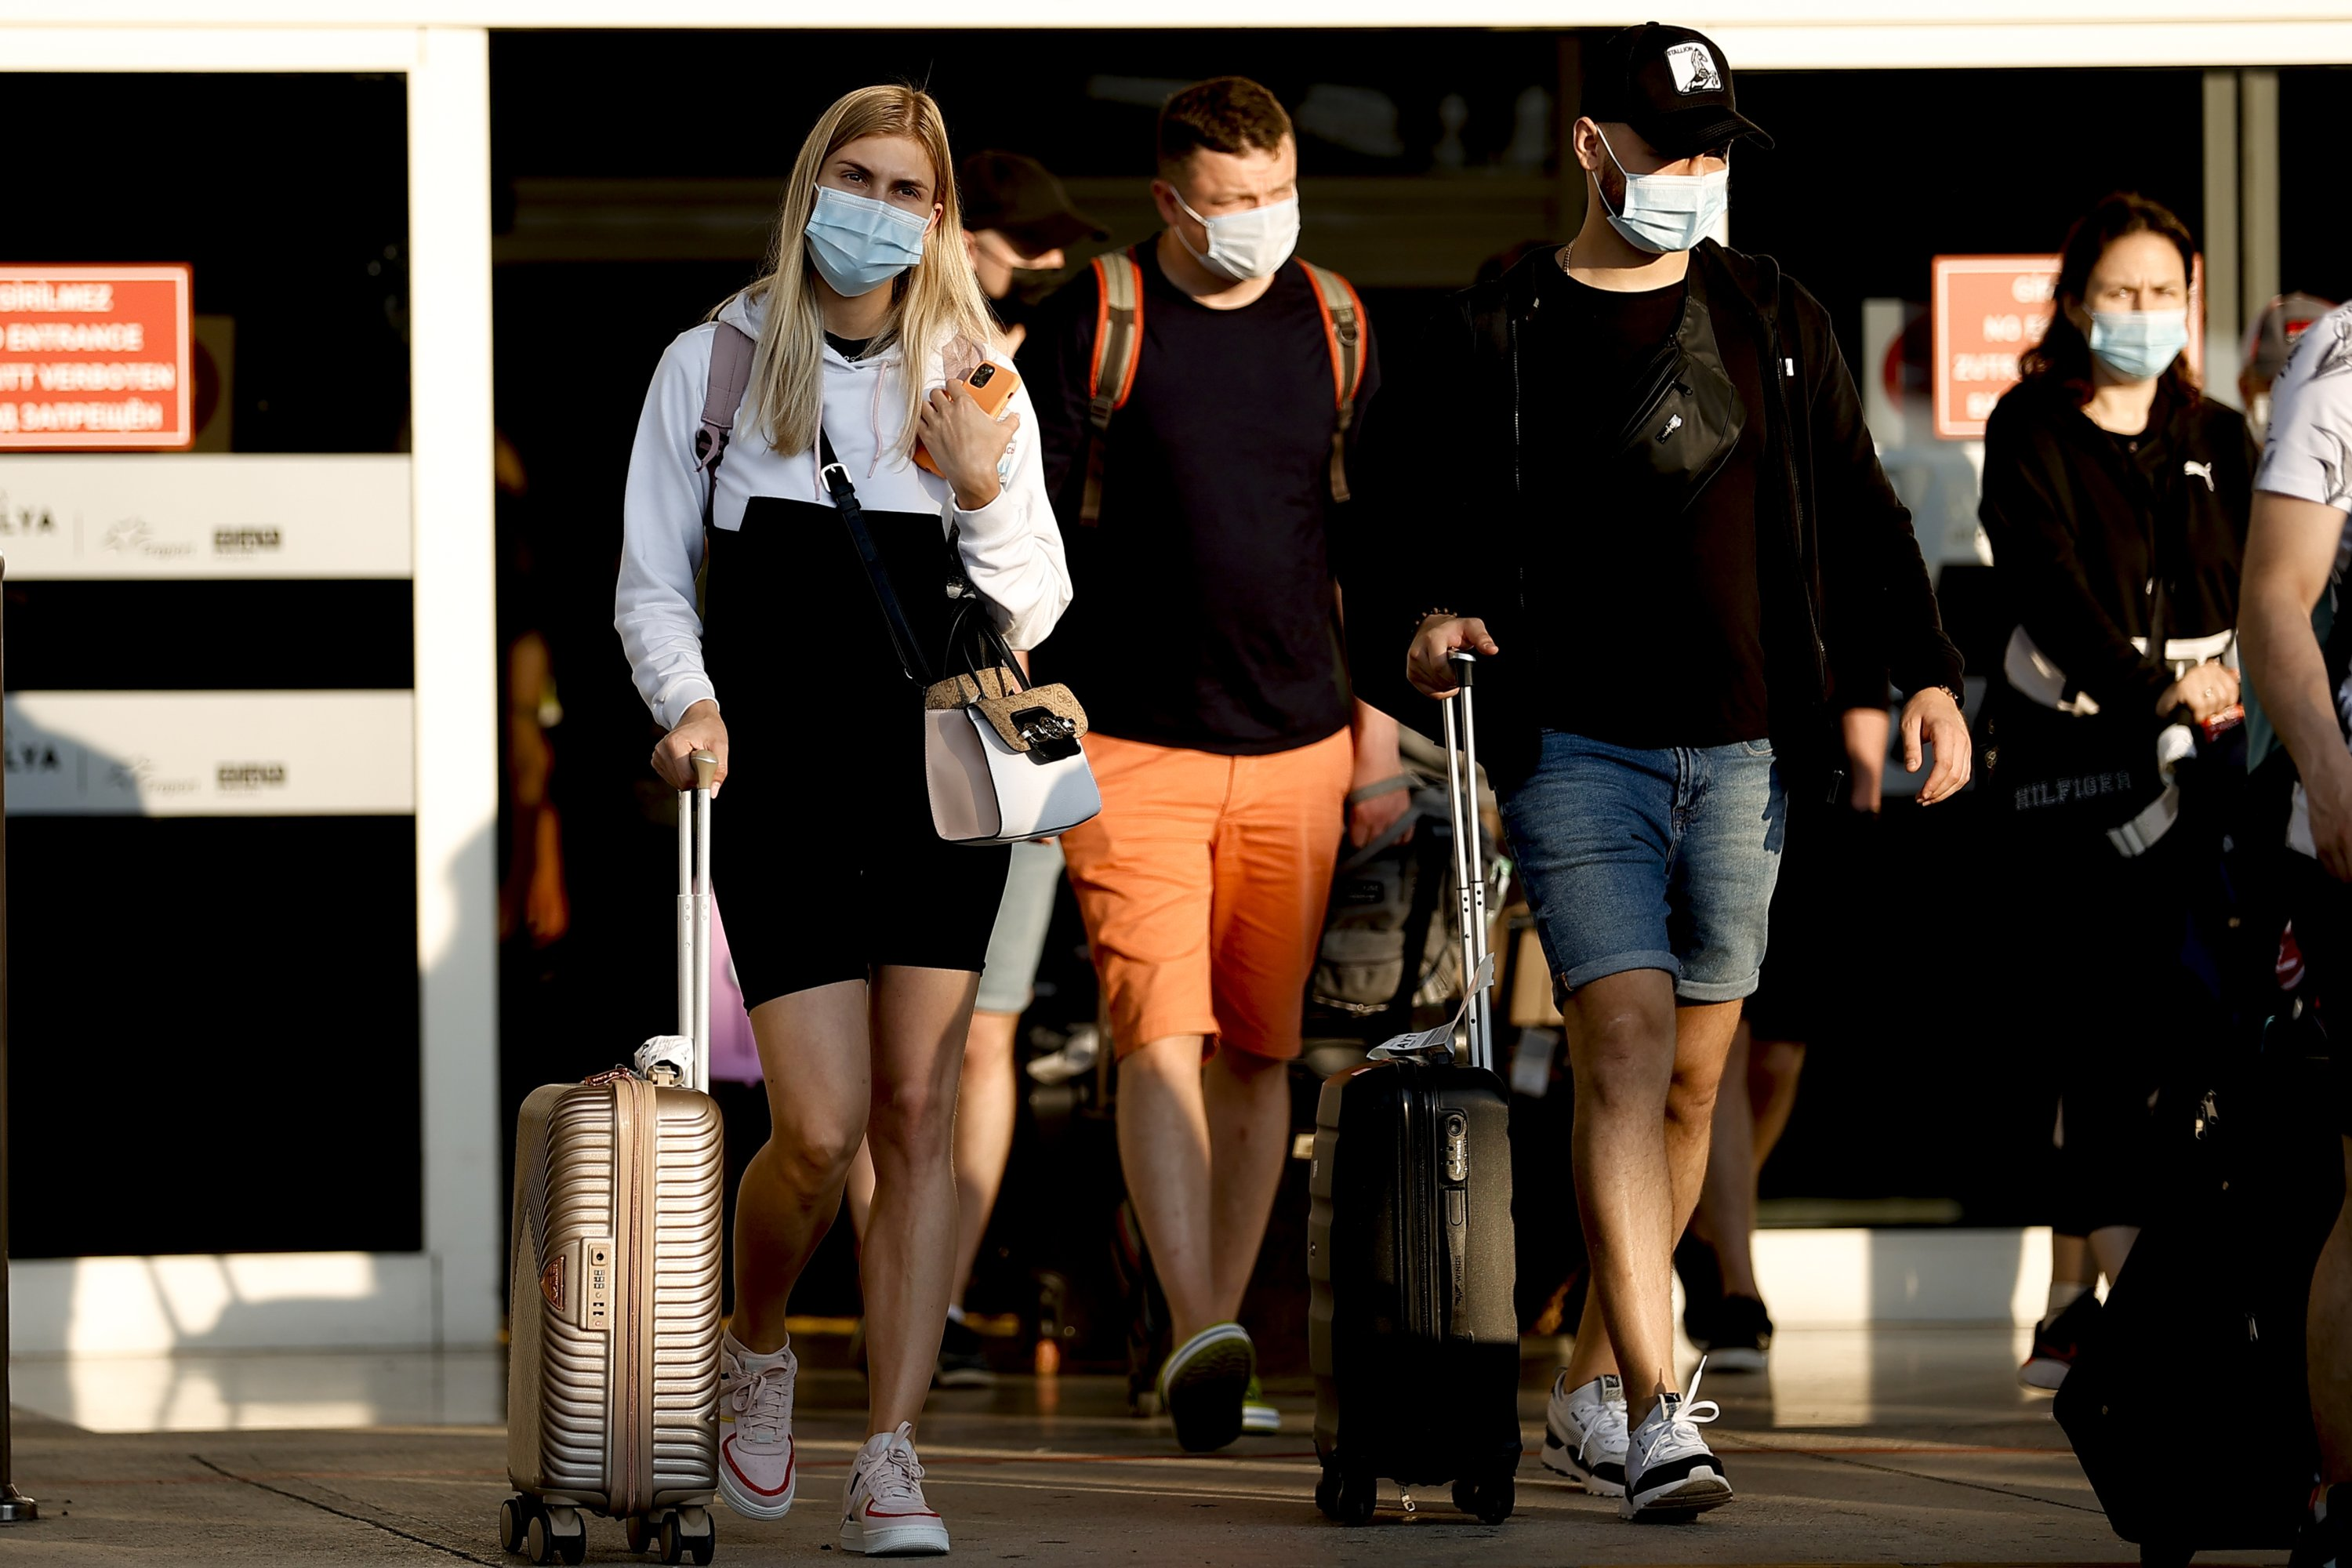 Russian tourists exit the airport as they arrive in the southern province of Antalya, Turkey, June 22, 2021. (AA Photo)